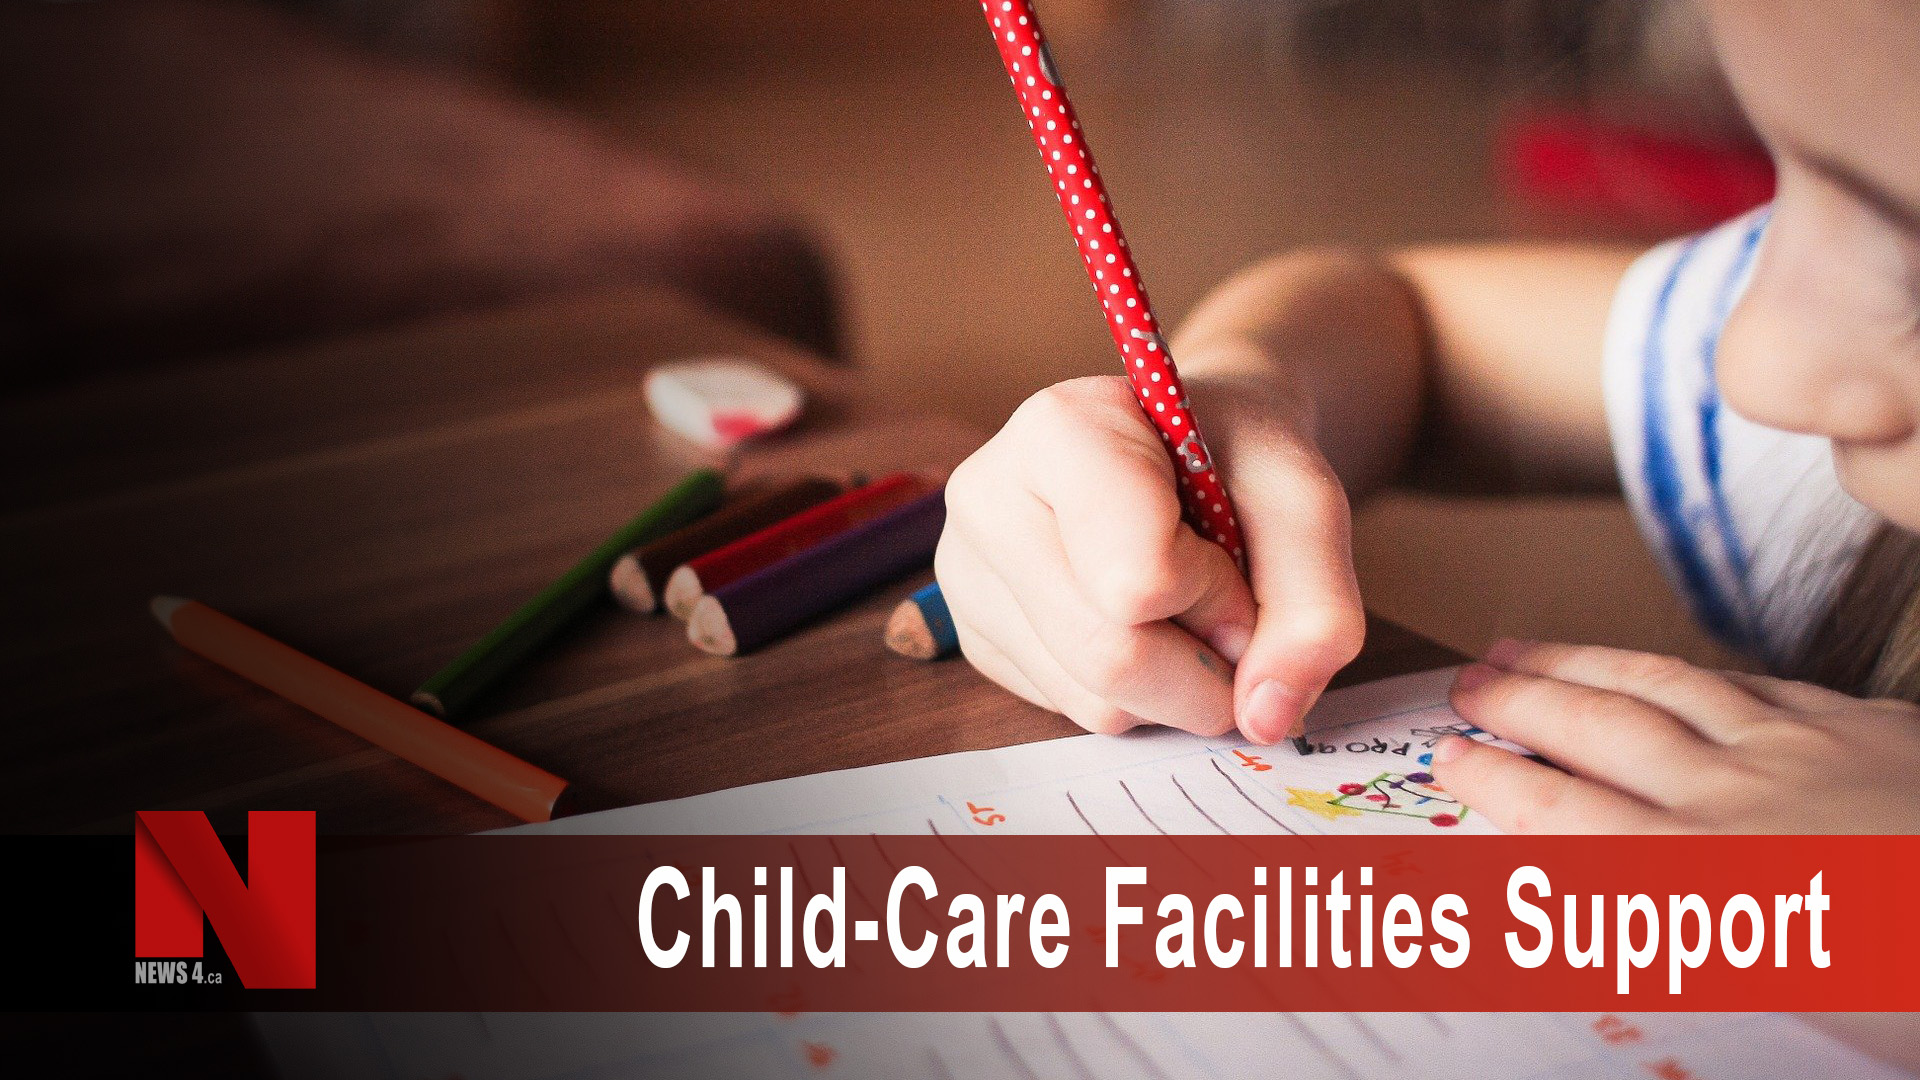 Child-care facilities support